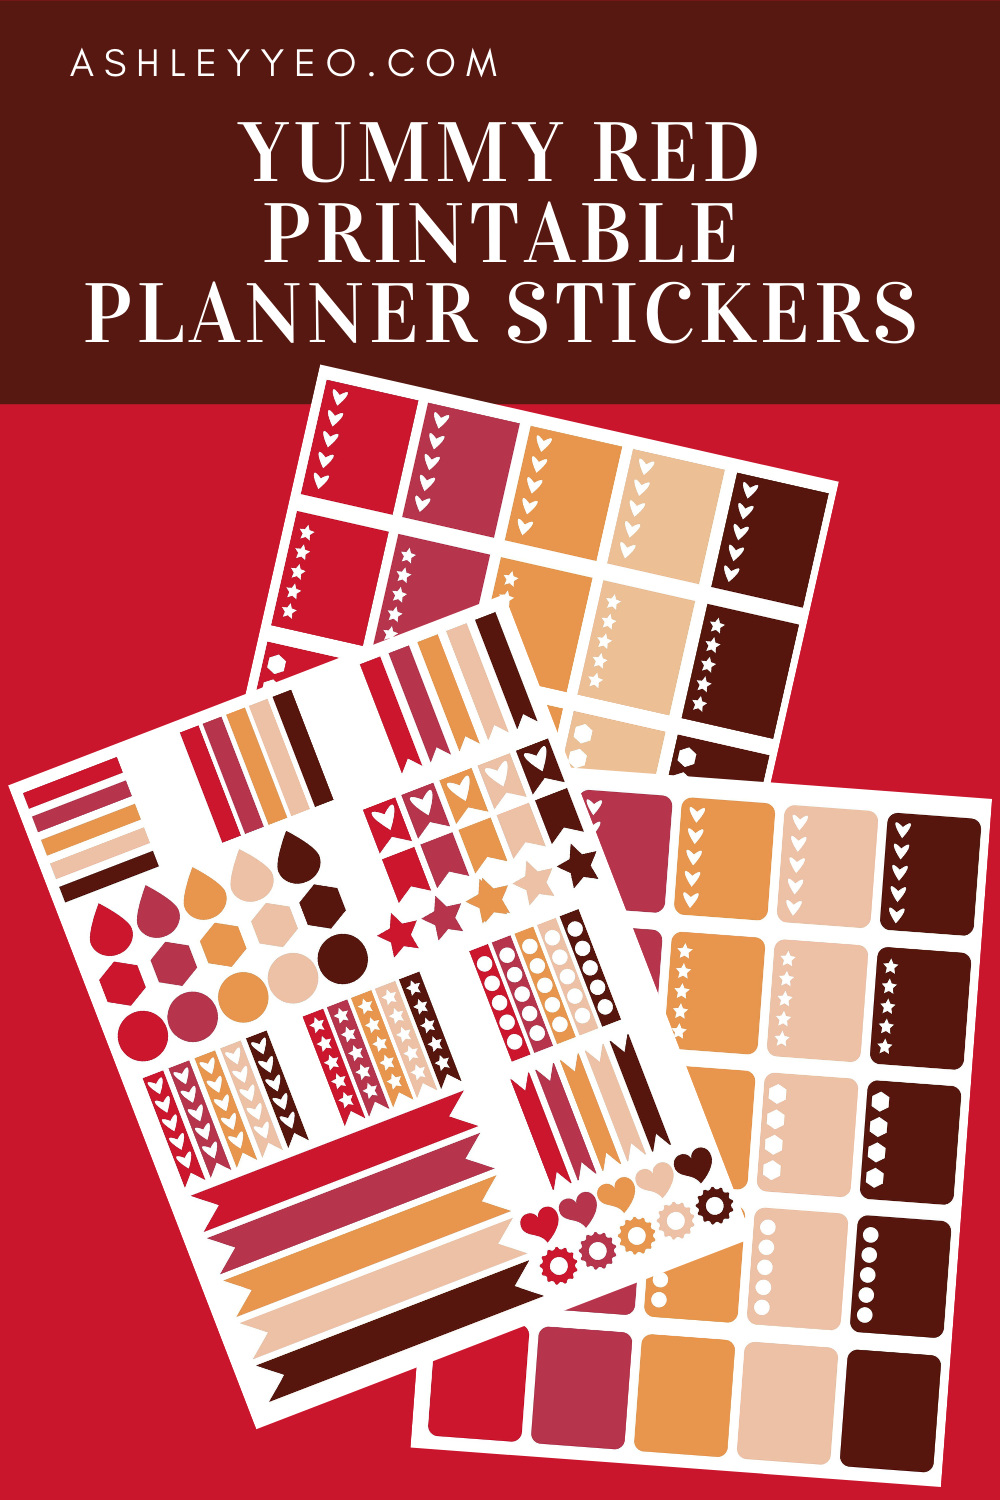 Yummy Red Printable Planner Stickers